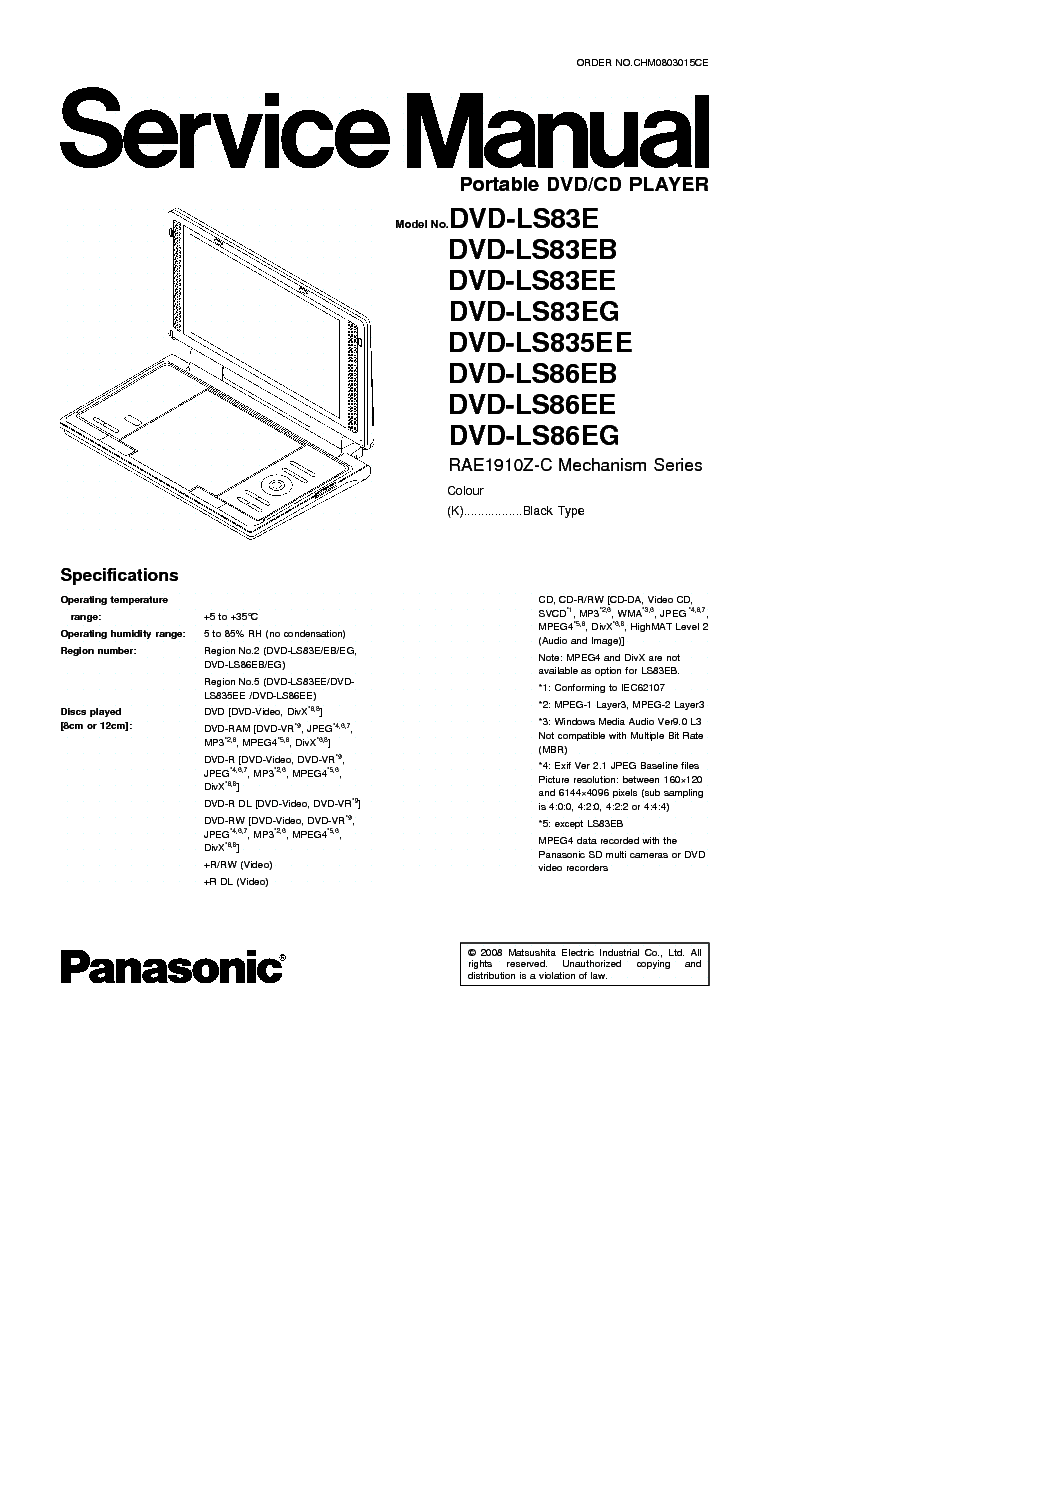 PANASONIC LS83,835,86 PORTABLE DVD Service Manual download